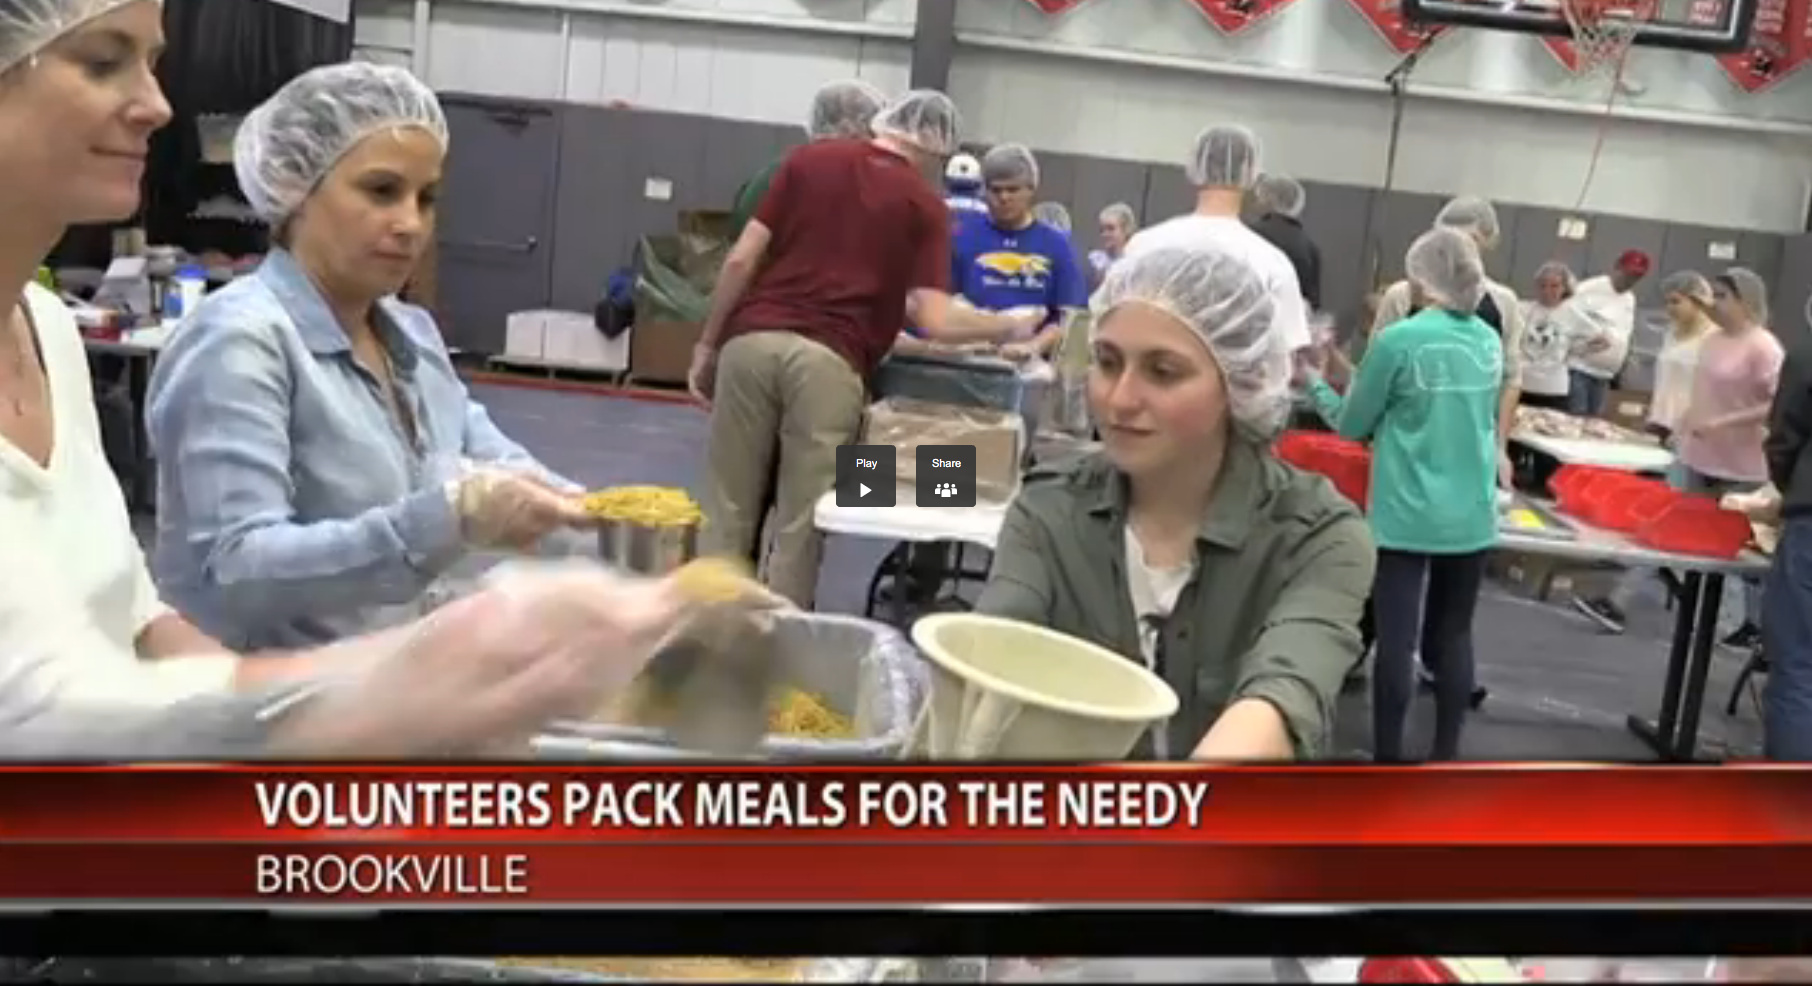 Long Island Lutheran High School Blows Past 2 Million Meals Packed!